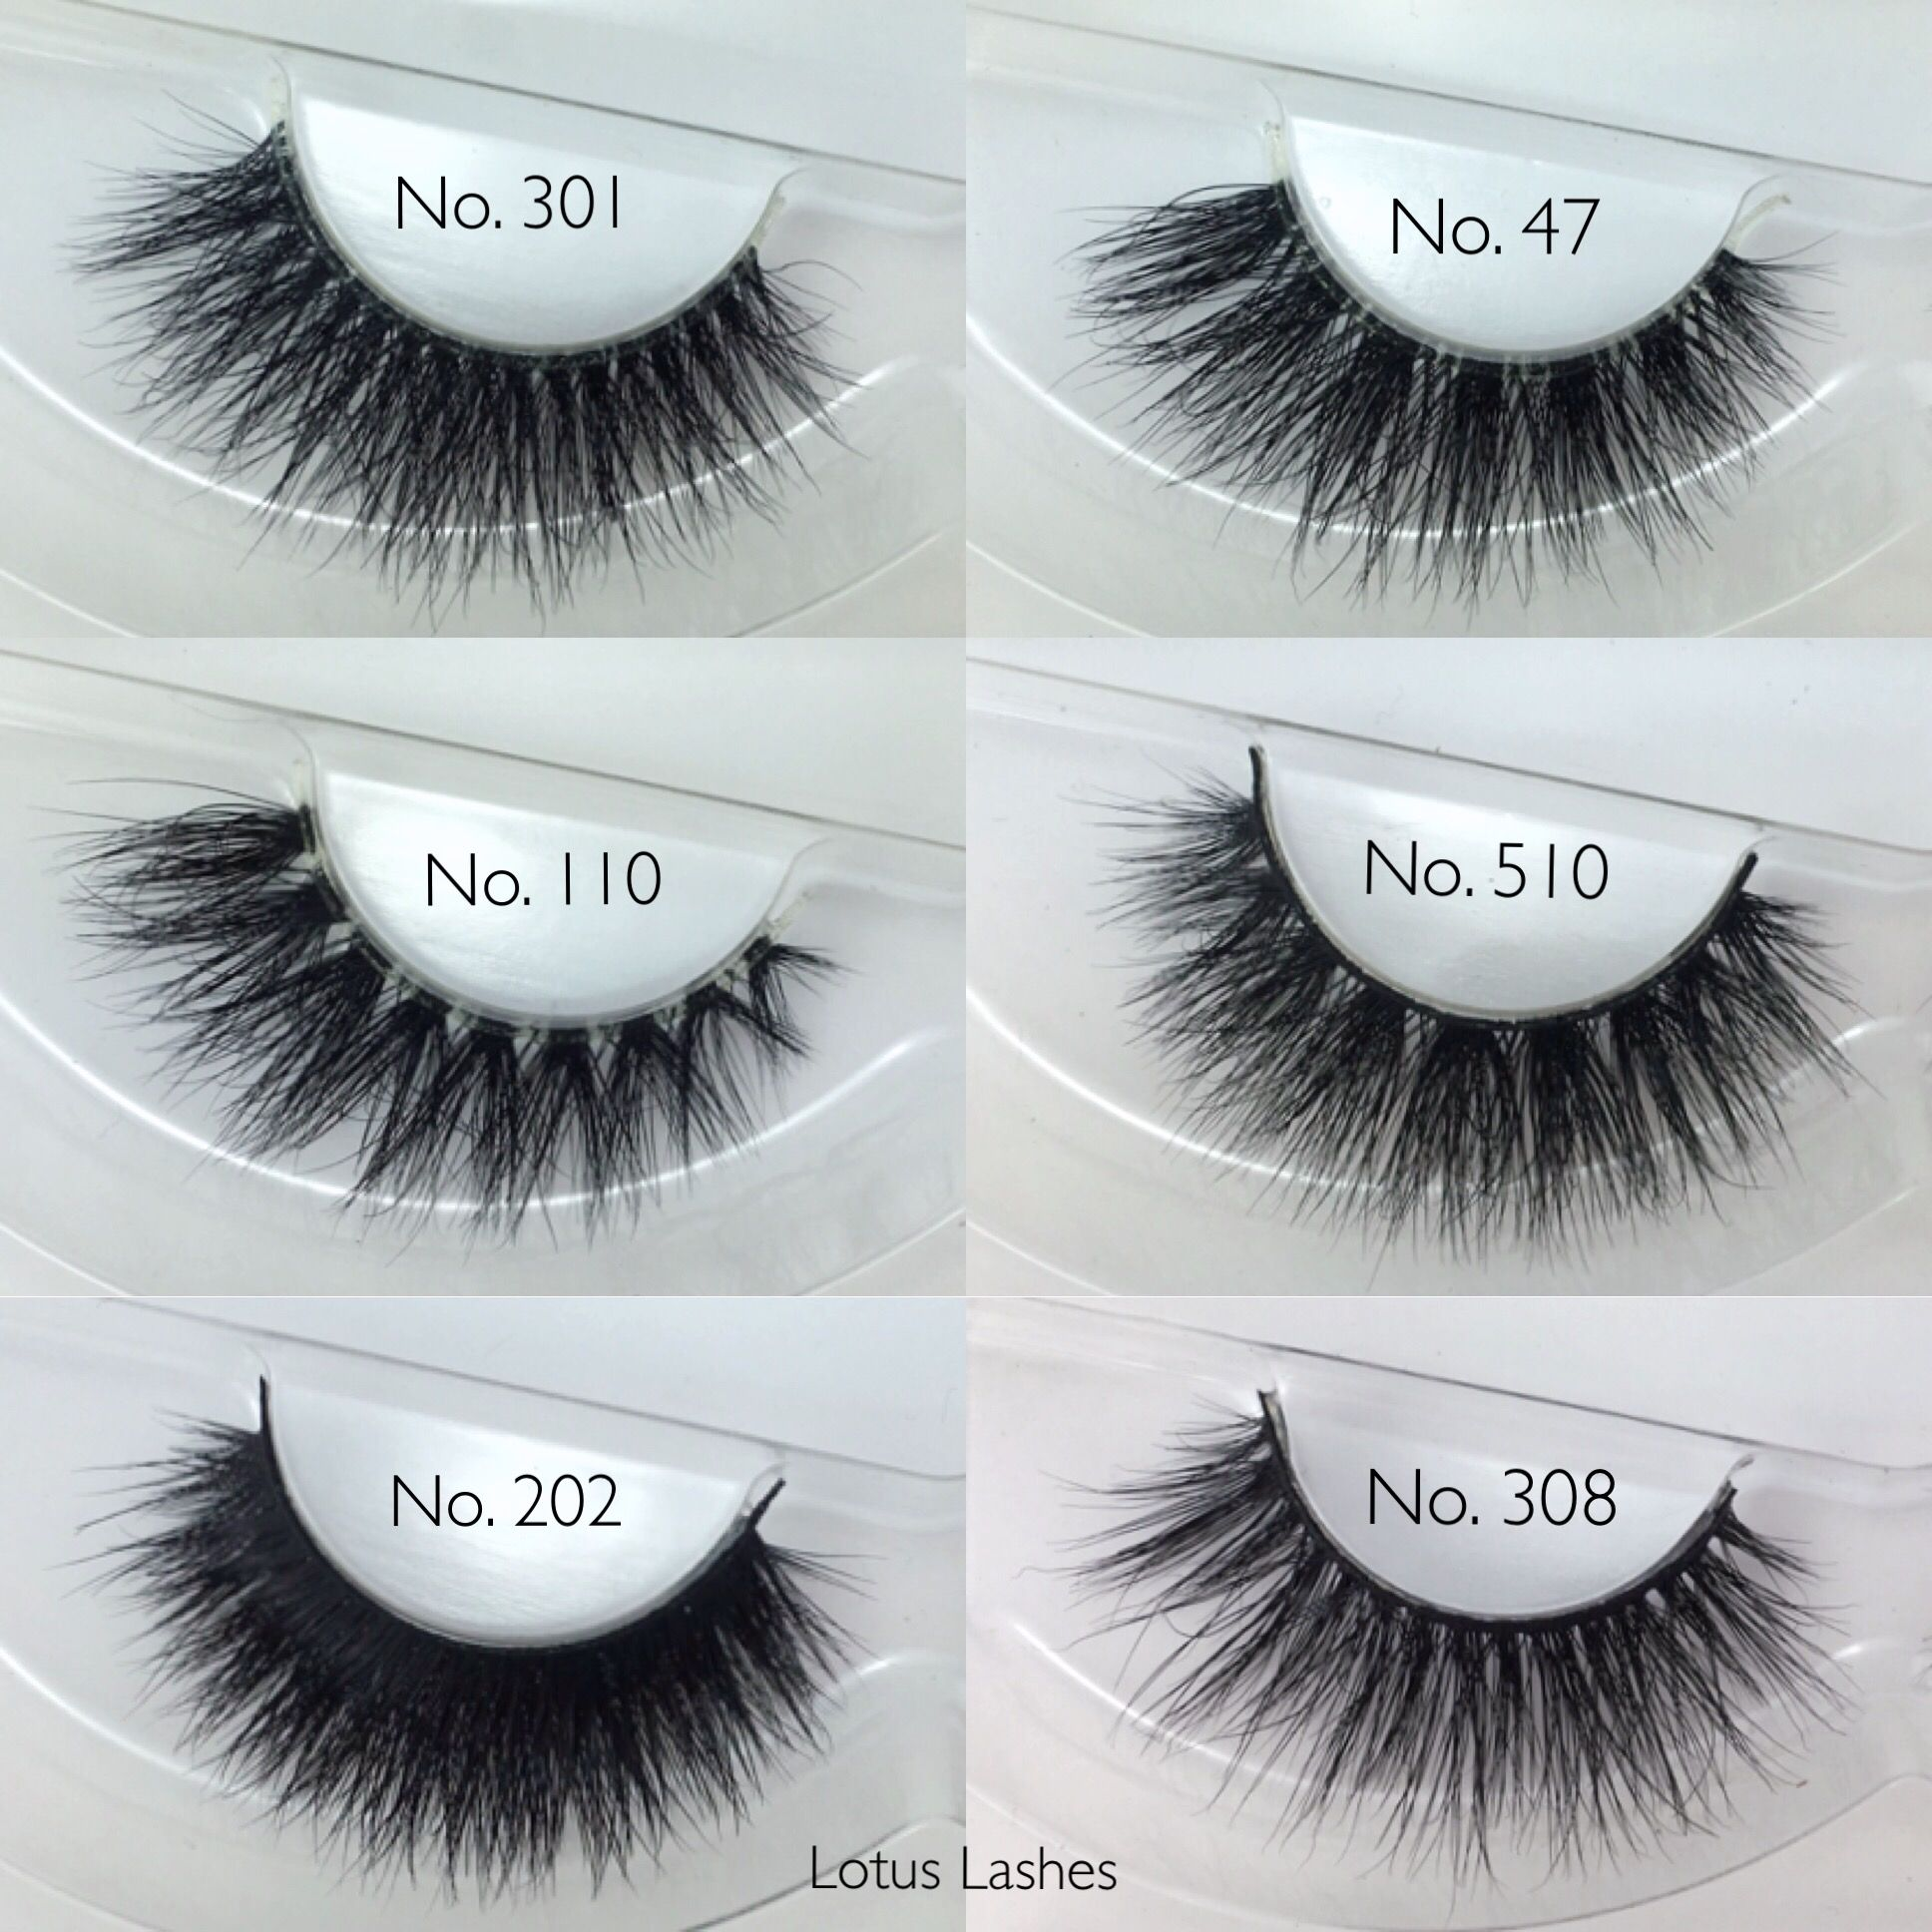 8d3a6f68495 We now offer over 30 different lash styles including 3D, double and  invisible band 100% natural mink lashes!